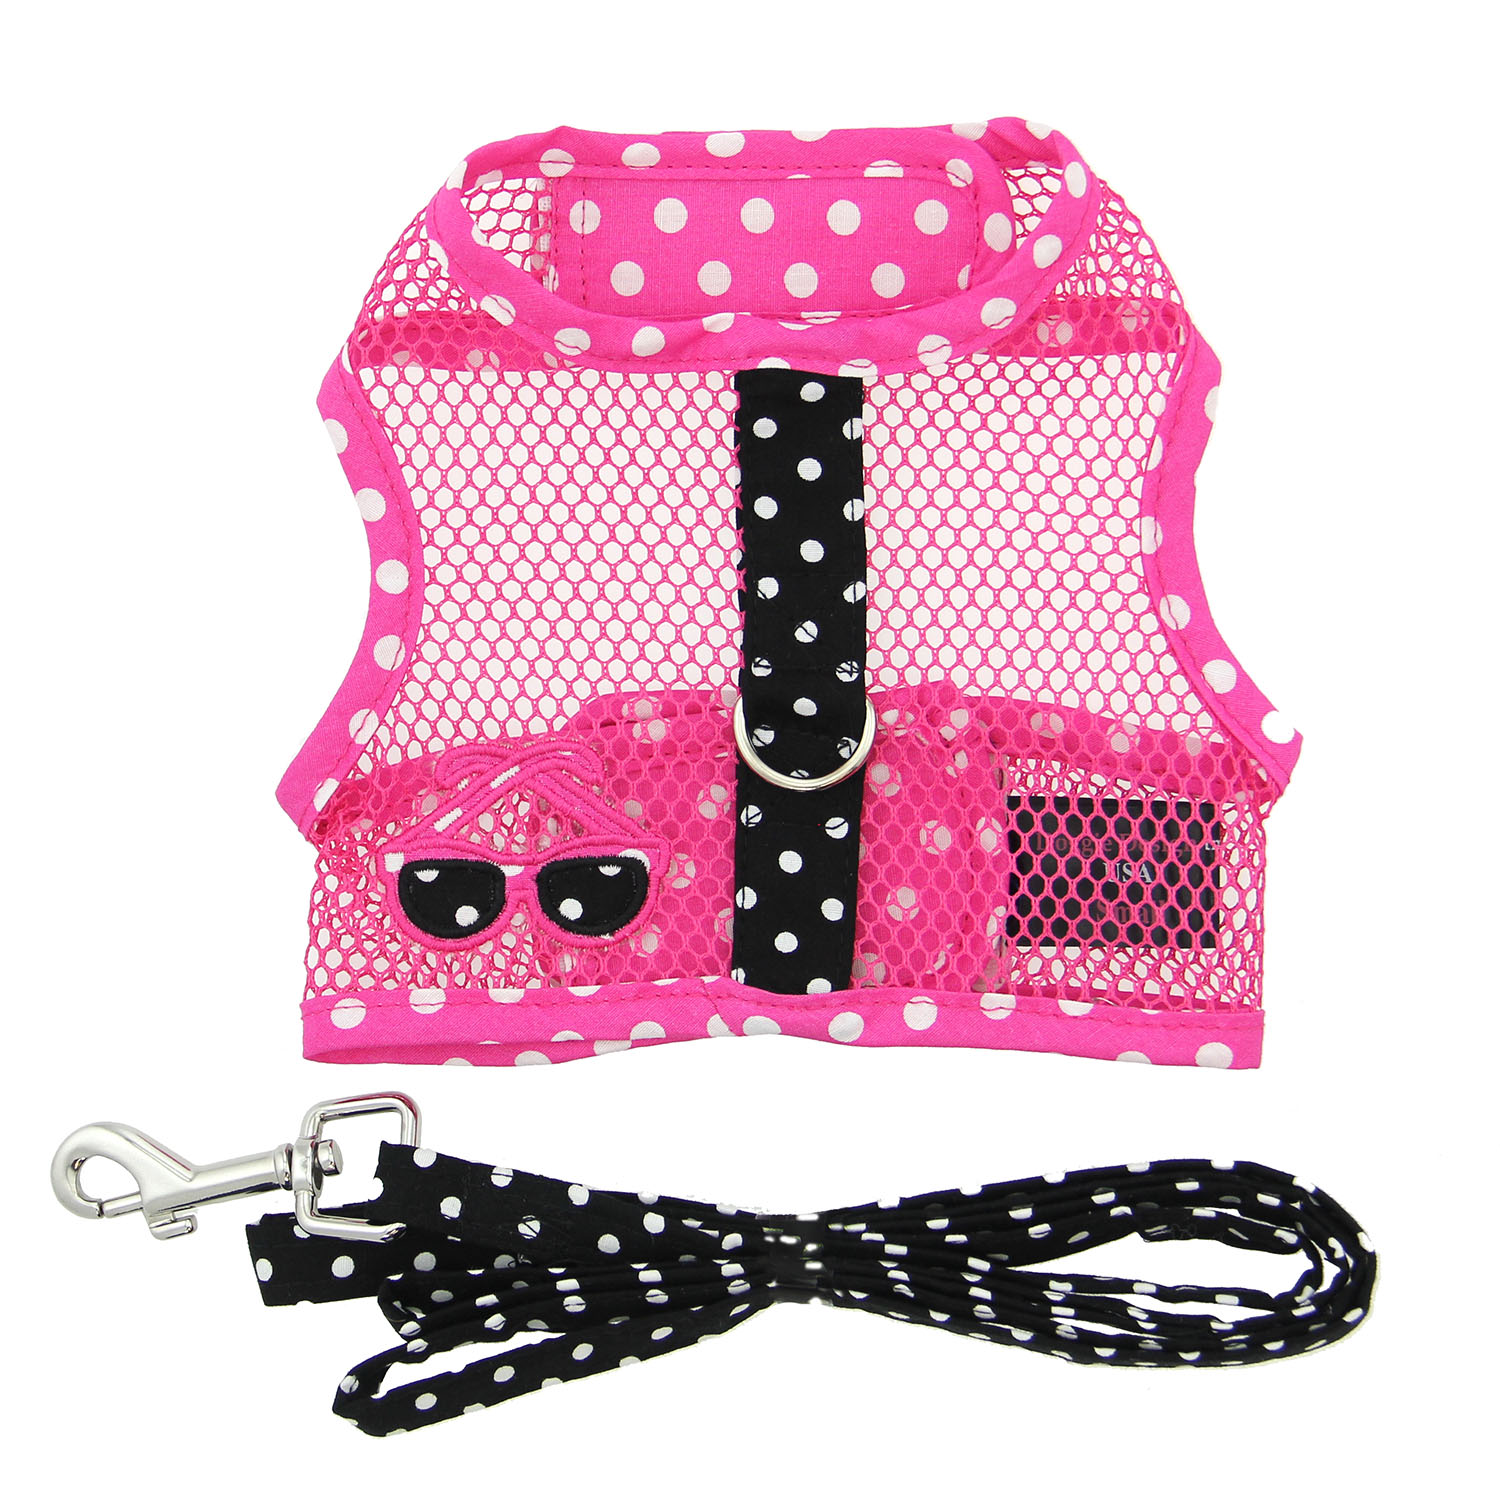 Doggie Design Cool Mesh Dog Harness with Matching Leash, Under the Sea Sunglasses, Large